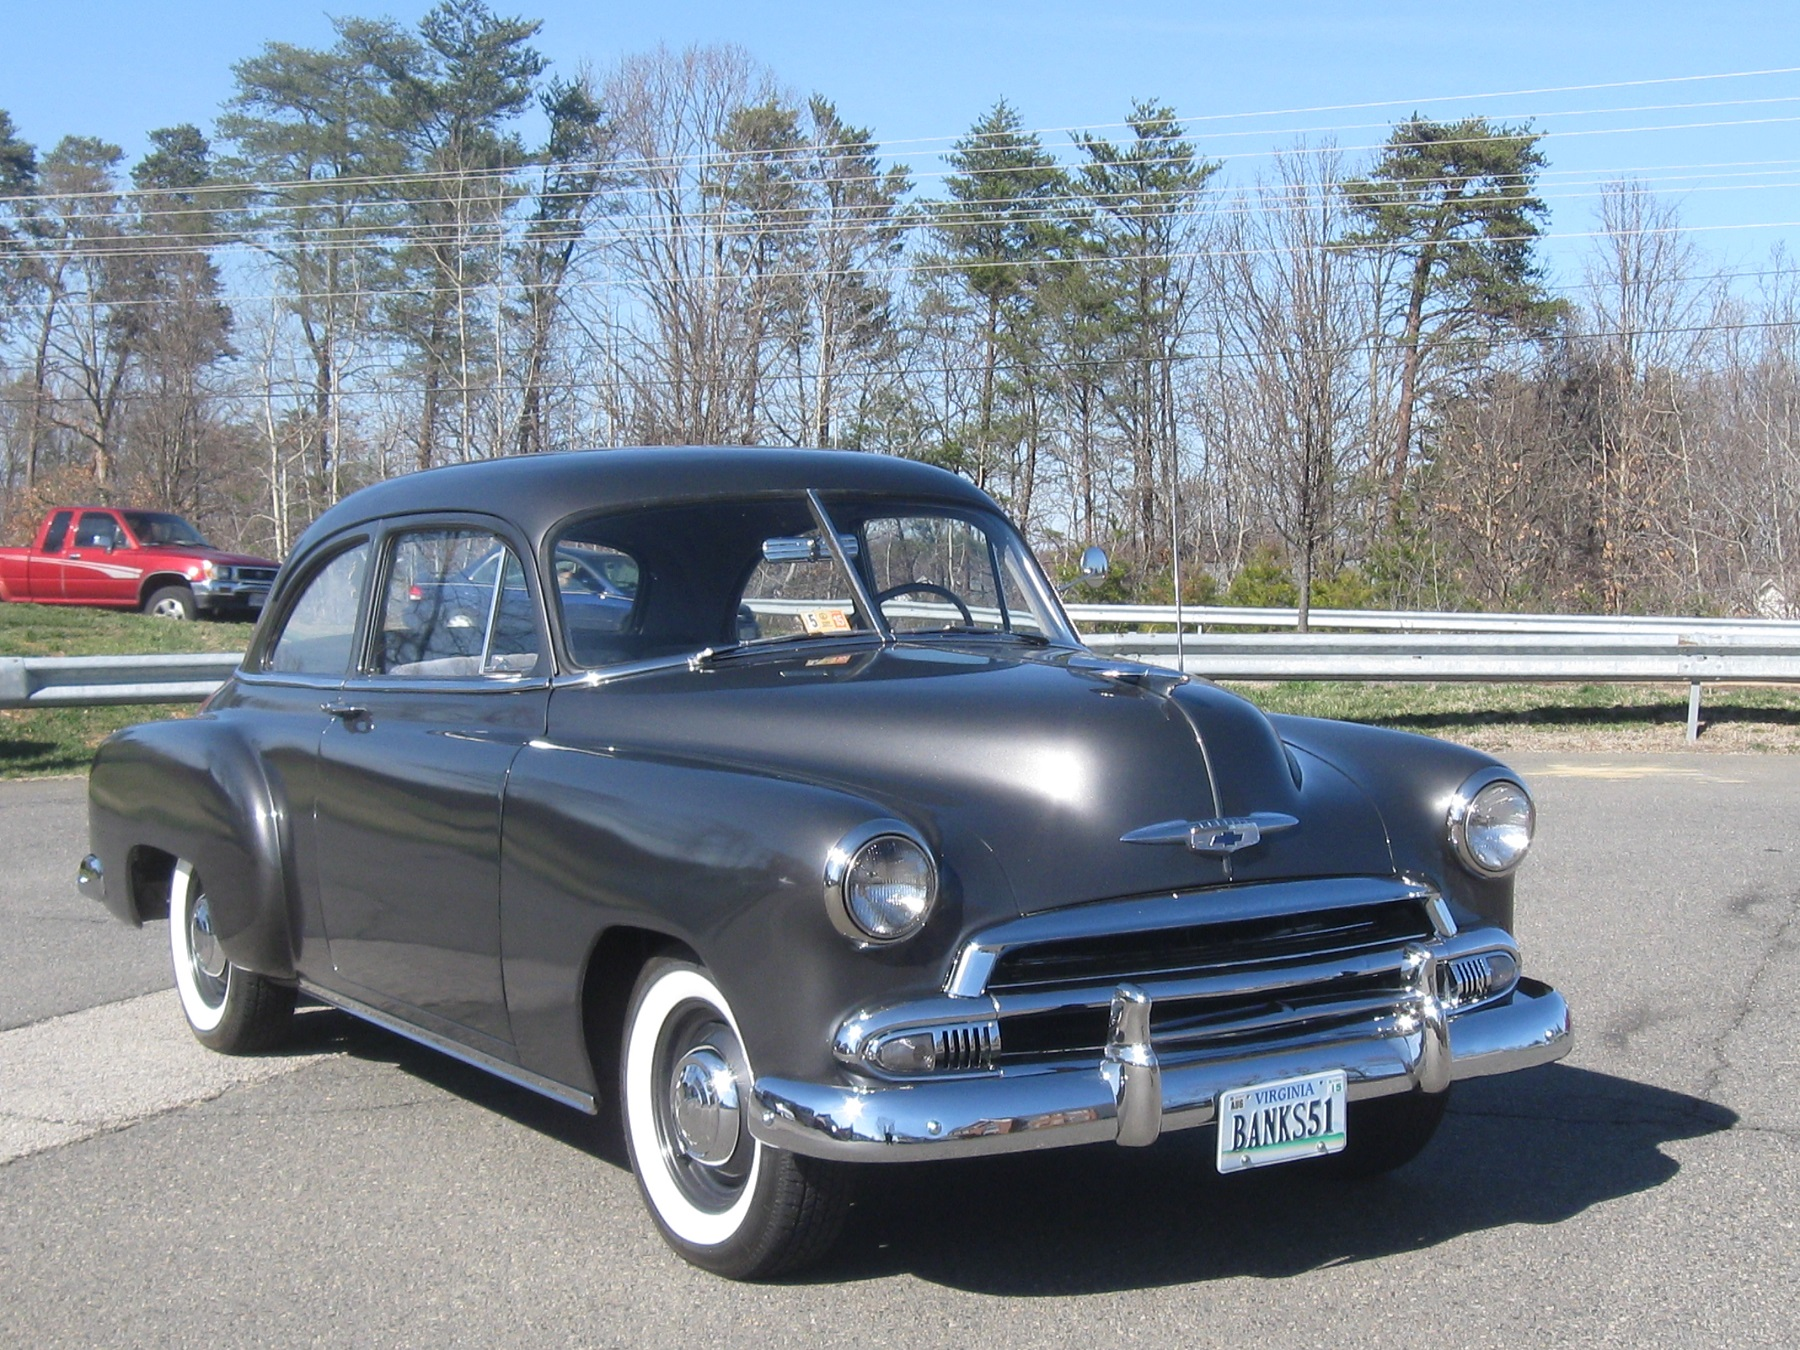 1951 Chevrolet Special Fond Childhood Memories Classic Classics 2 Door Hardtop Of Course Years Pass And Styles Change But That Epitomized Perfection To The Youngster Unfortunately Uncles Fell By Wayside